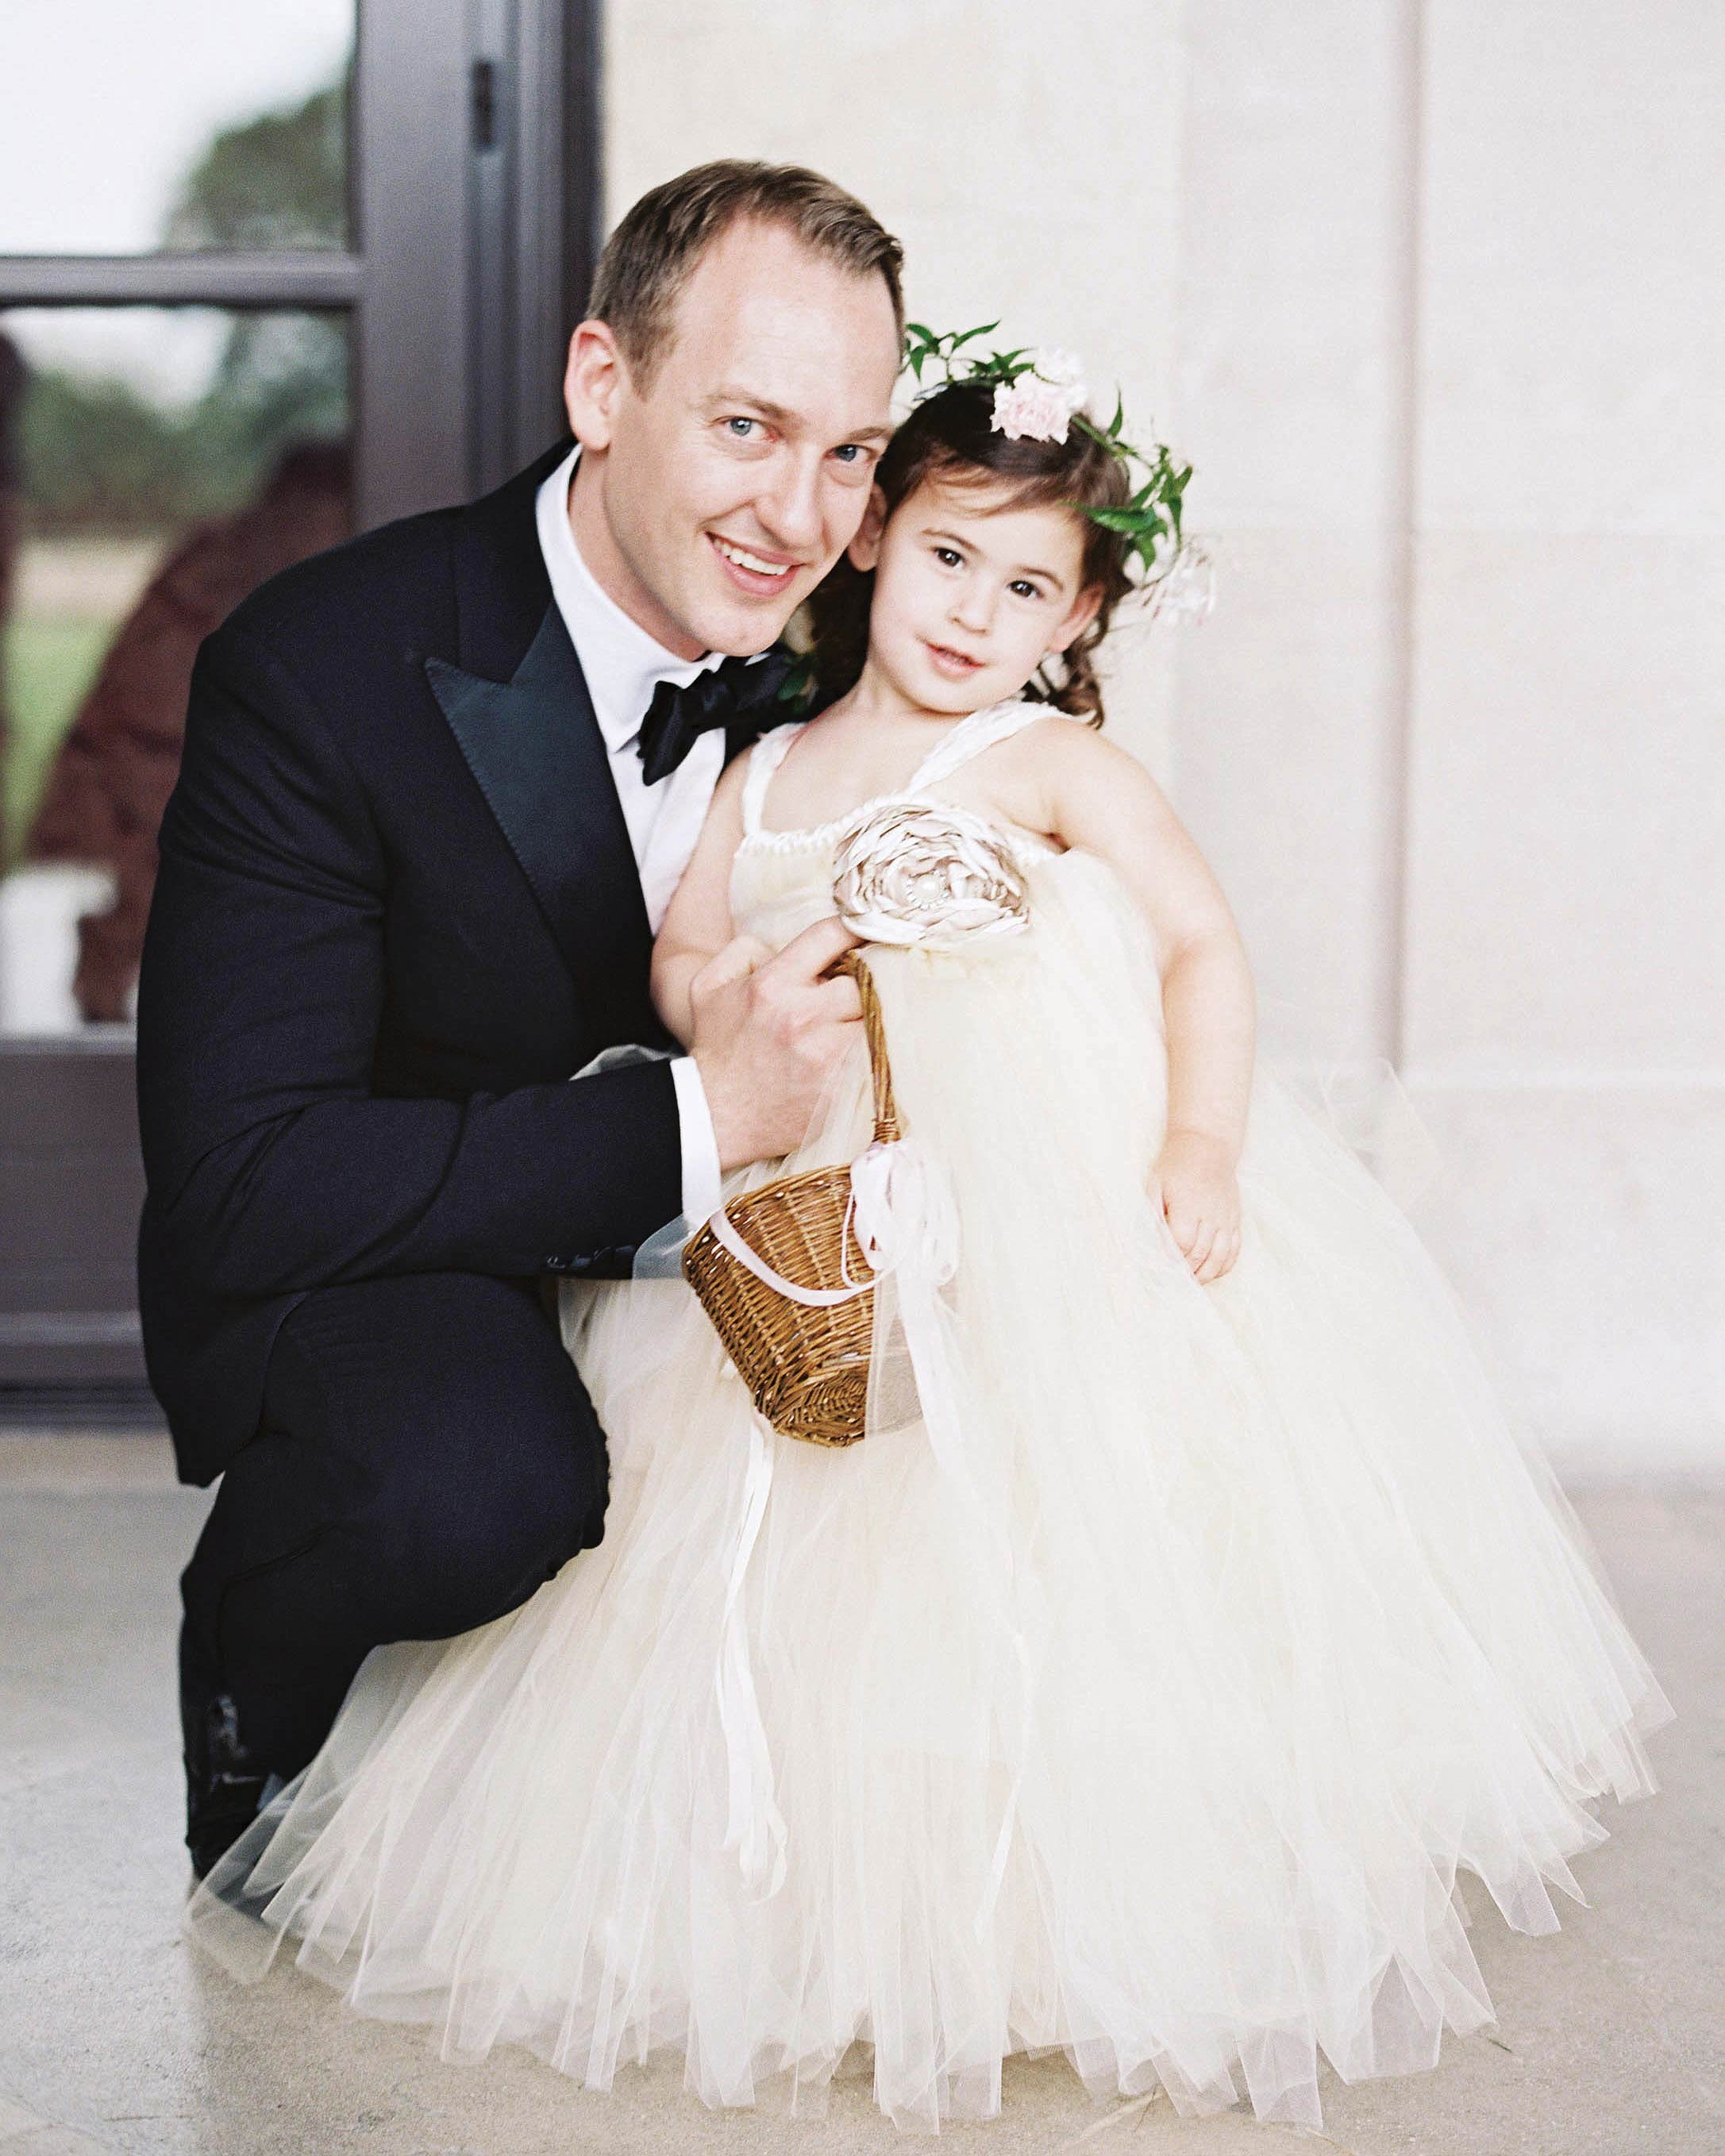 rebecca-david-wedding-new-york-groom-flower-girl-142-d112241.jpg